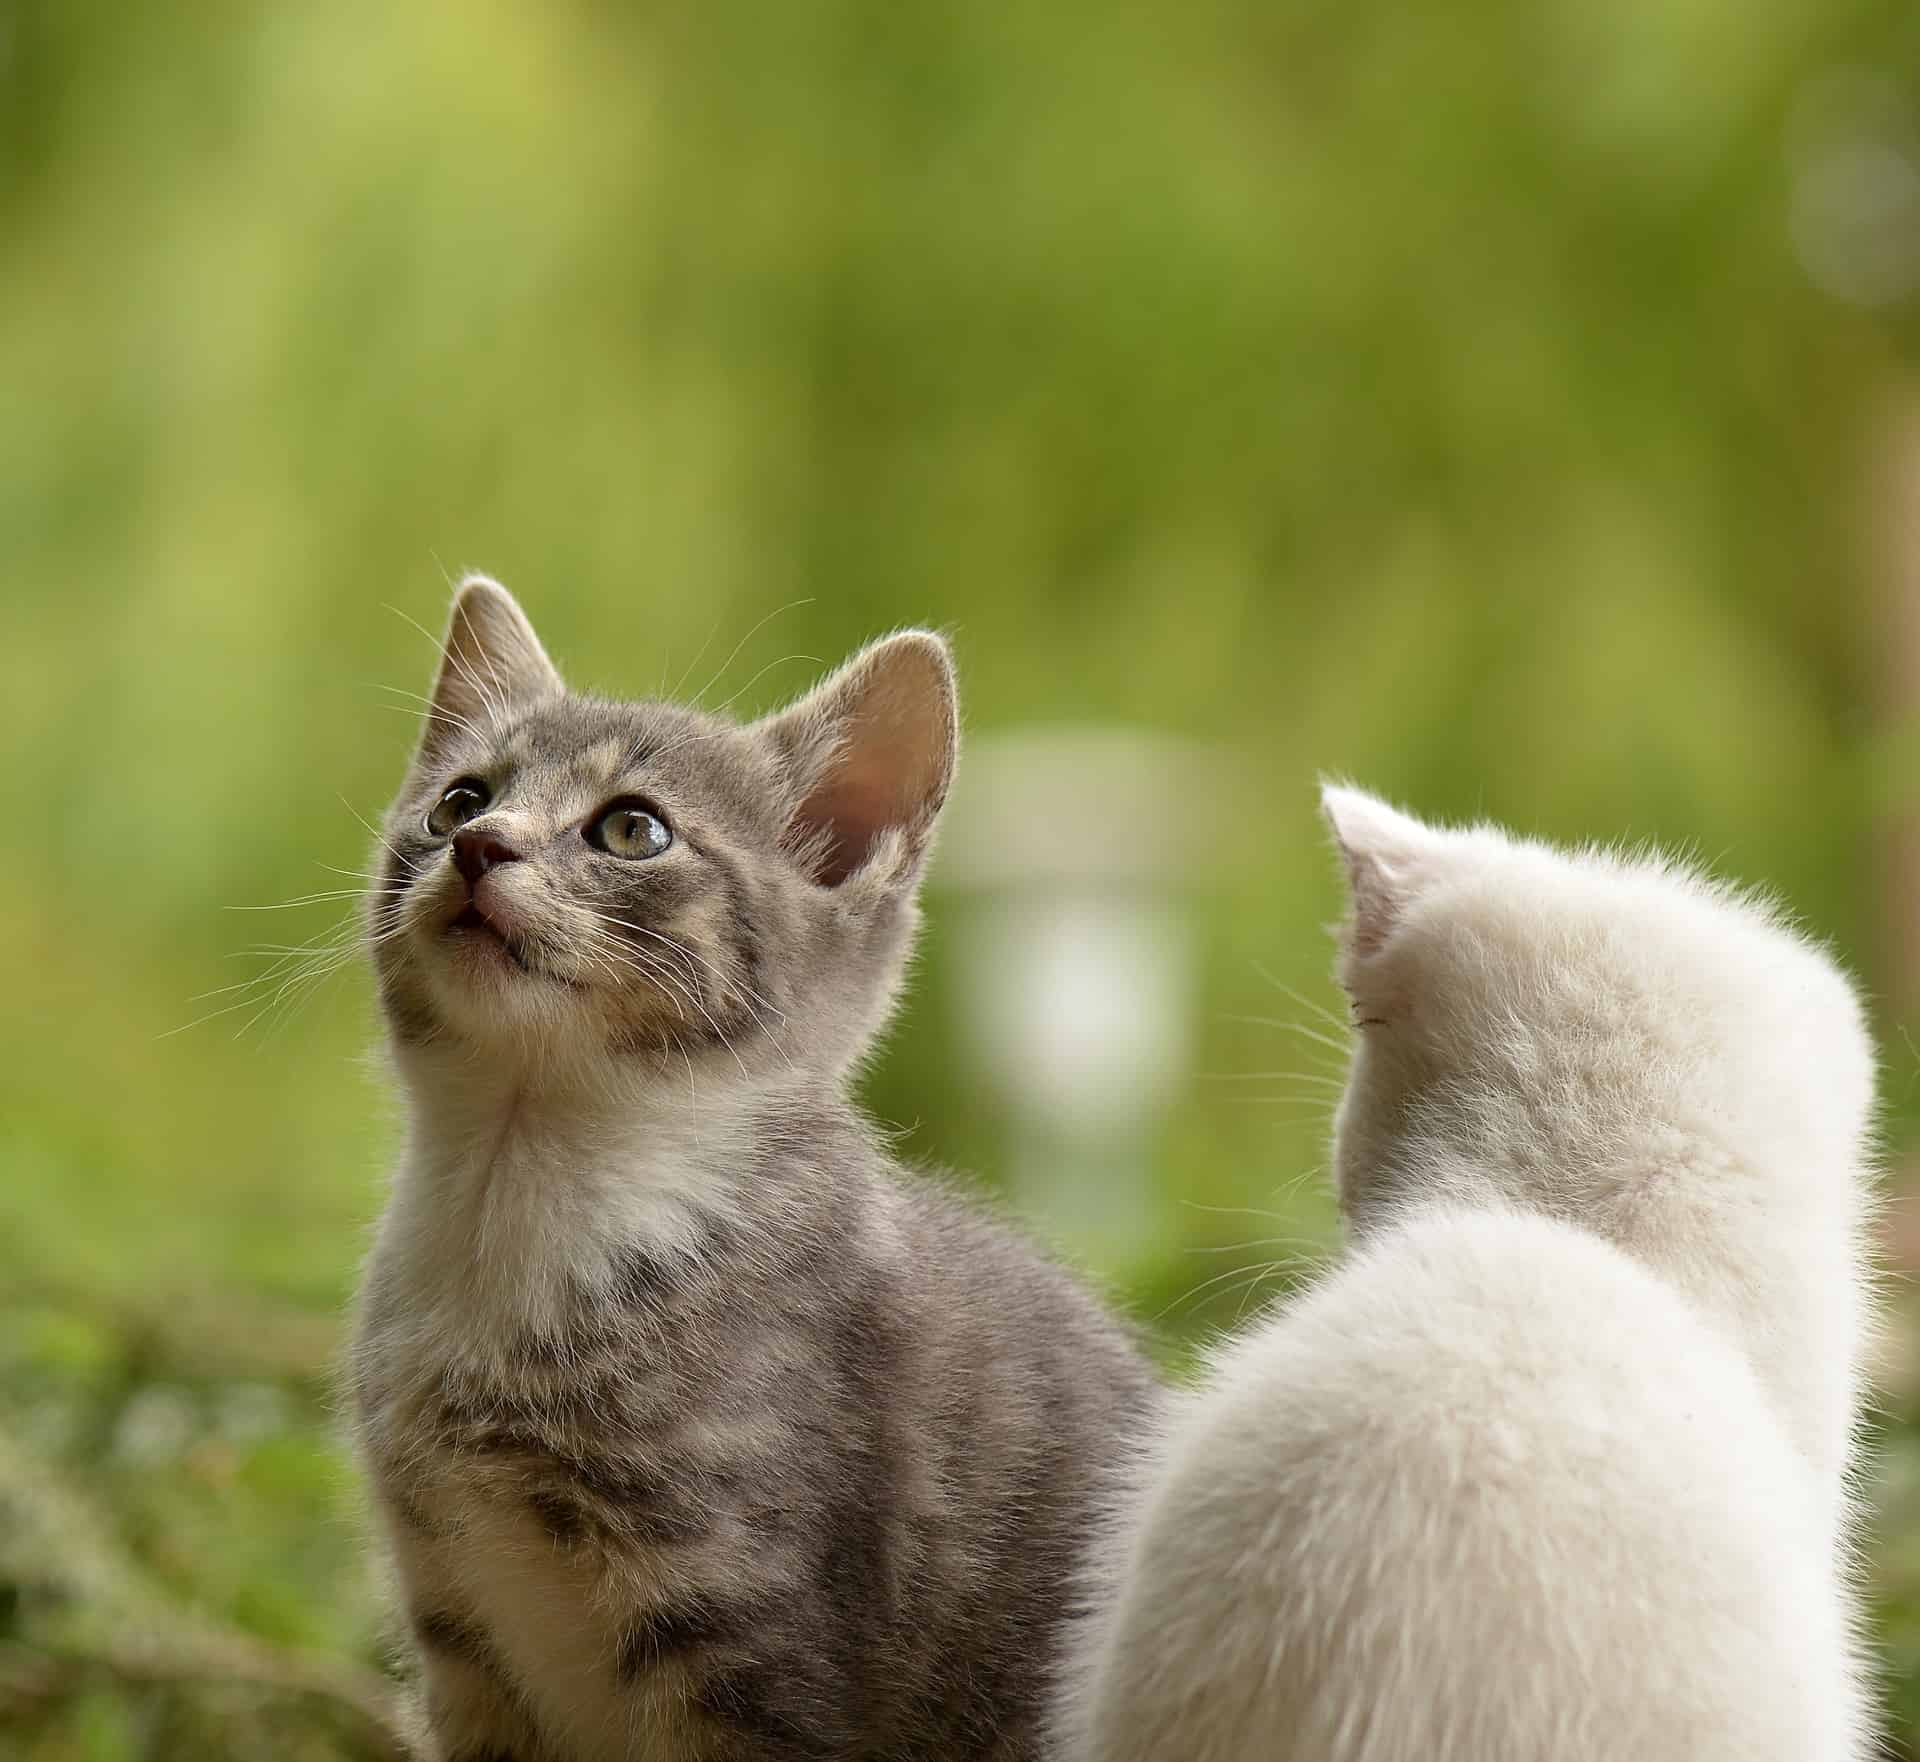 20 of the Cutest Kittens You've Ever Seen